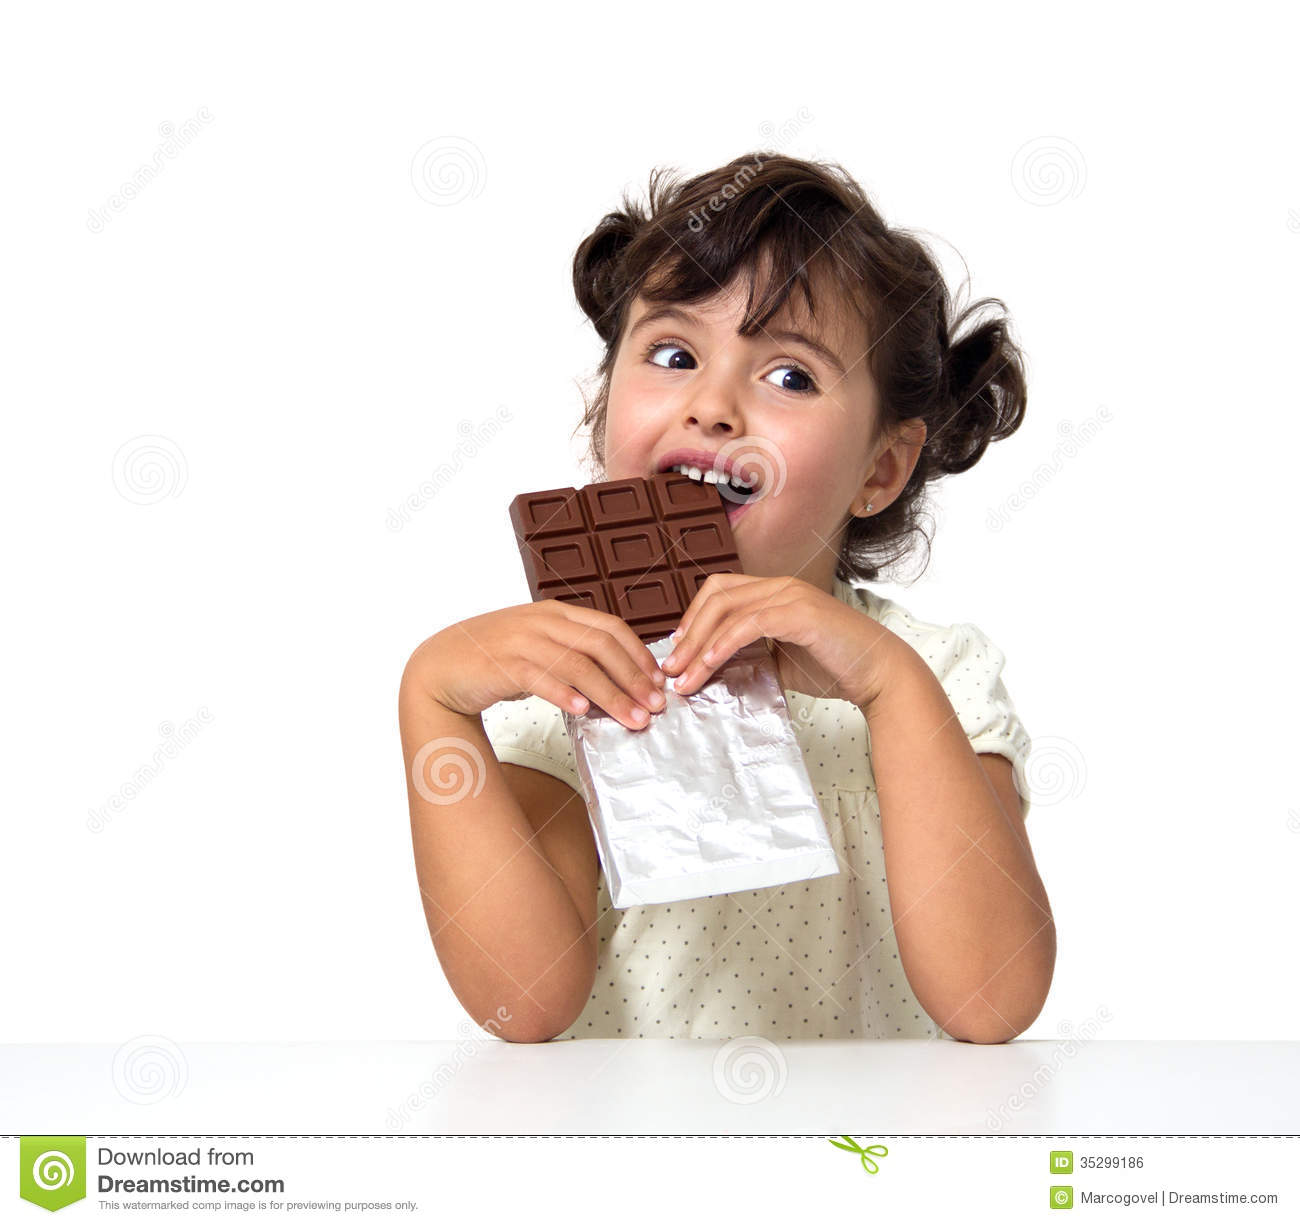 Child Eating Chocolate Royalty Free Stock Image - Image: 35299186